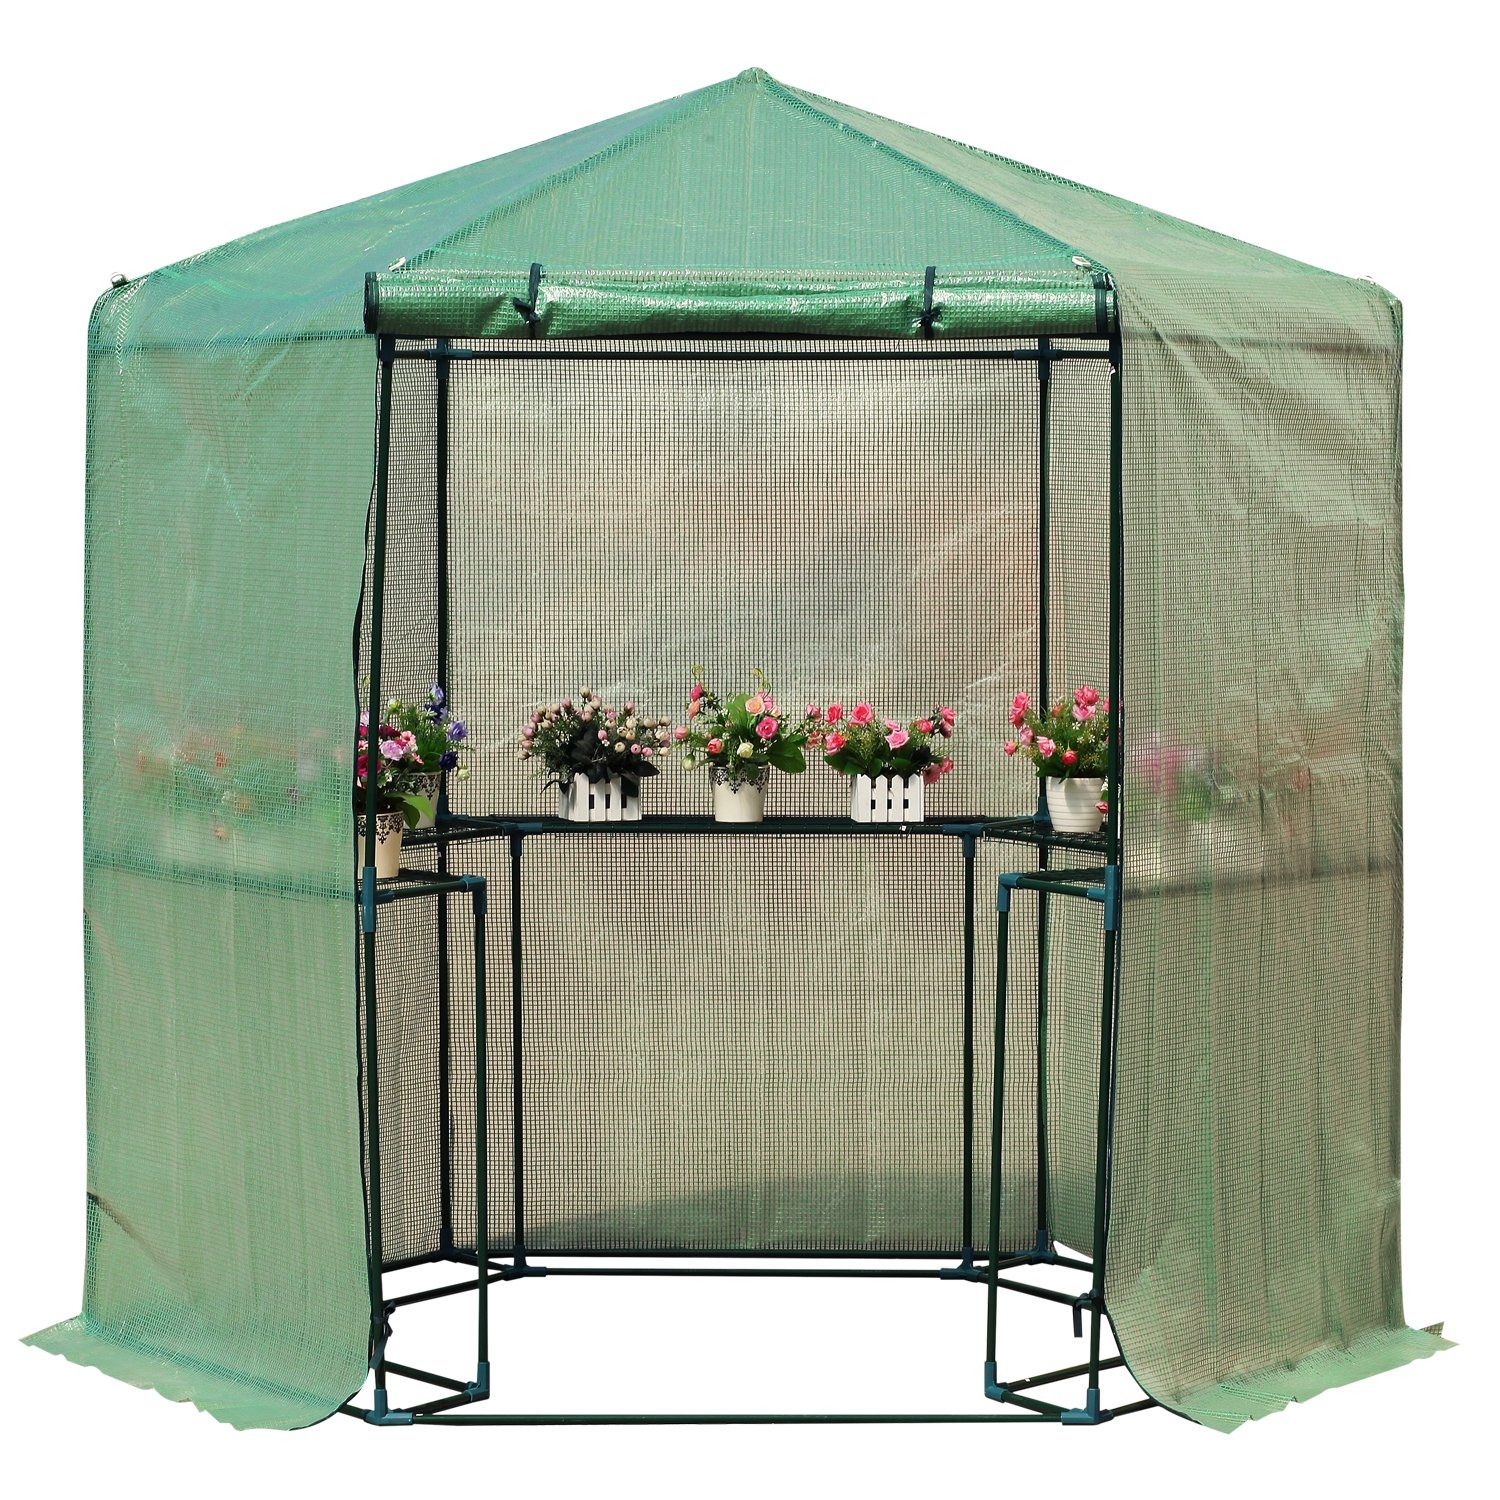 Outsunny 6.5' x 7' 2 Tier Outdoor Portable Walk-In Hexagonal Greenhouse Kit